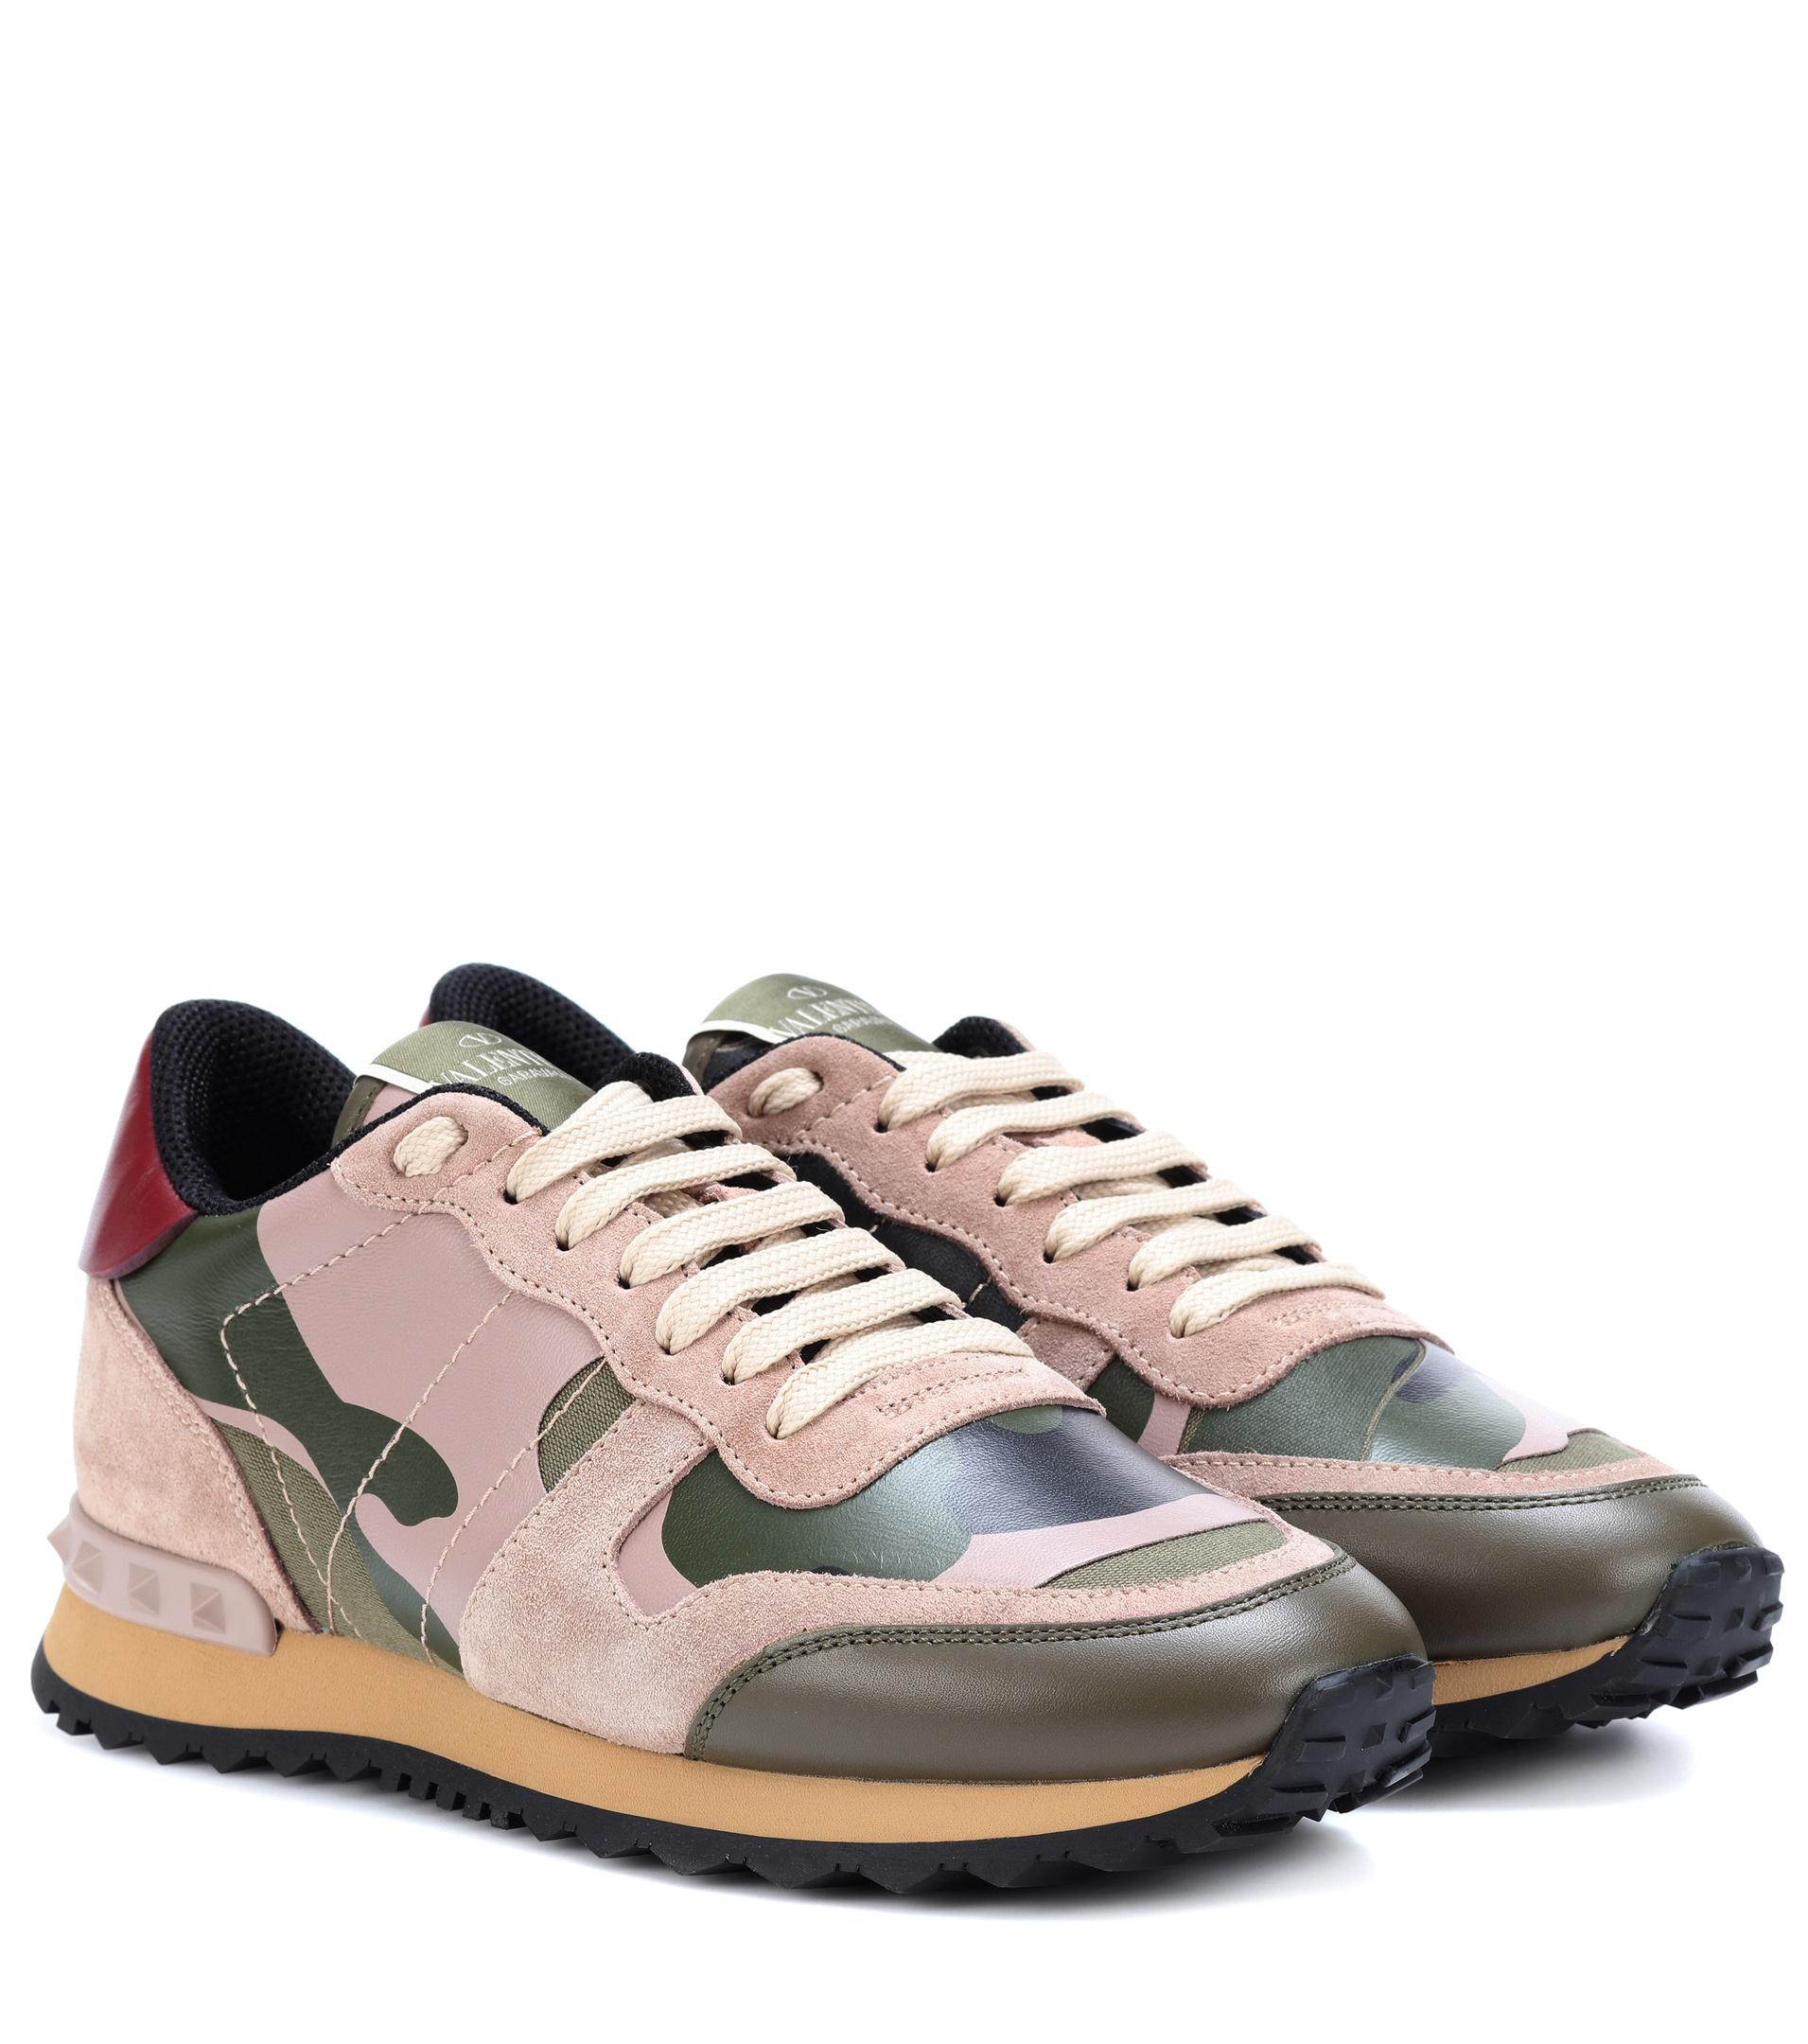 c9f837aaccc77 Valentino Rockrunner Mixed-material Camouflage Sneakers in Green ...